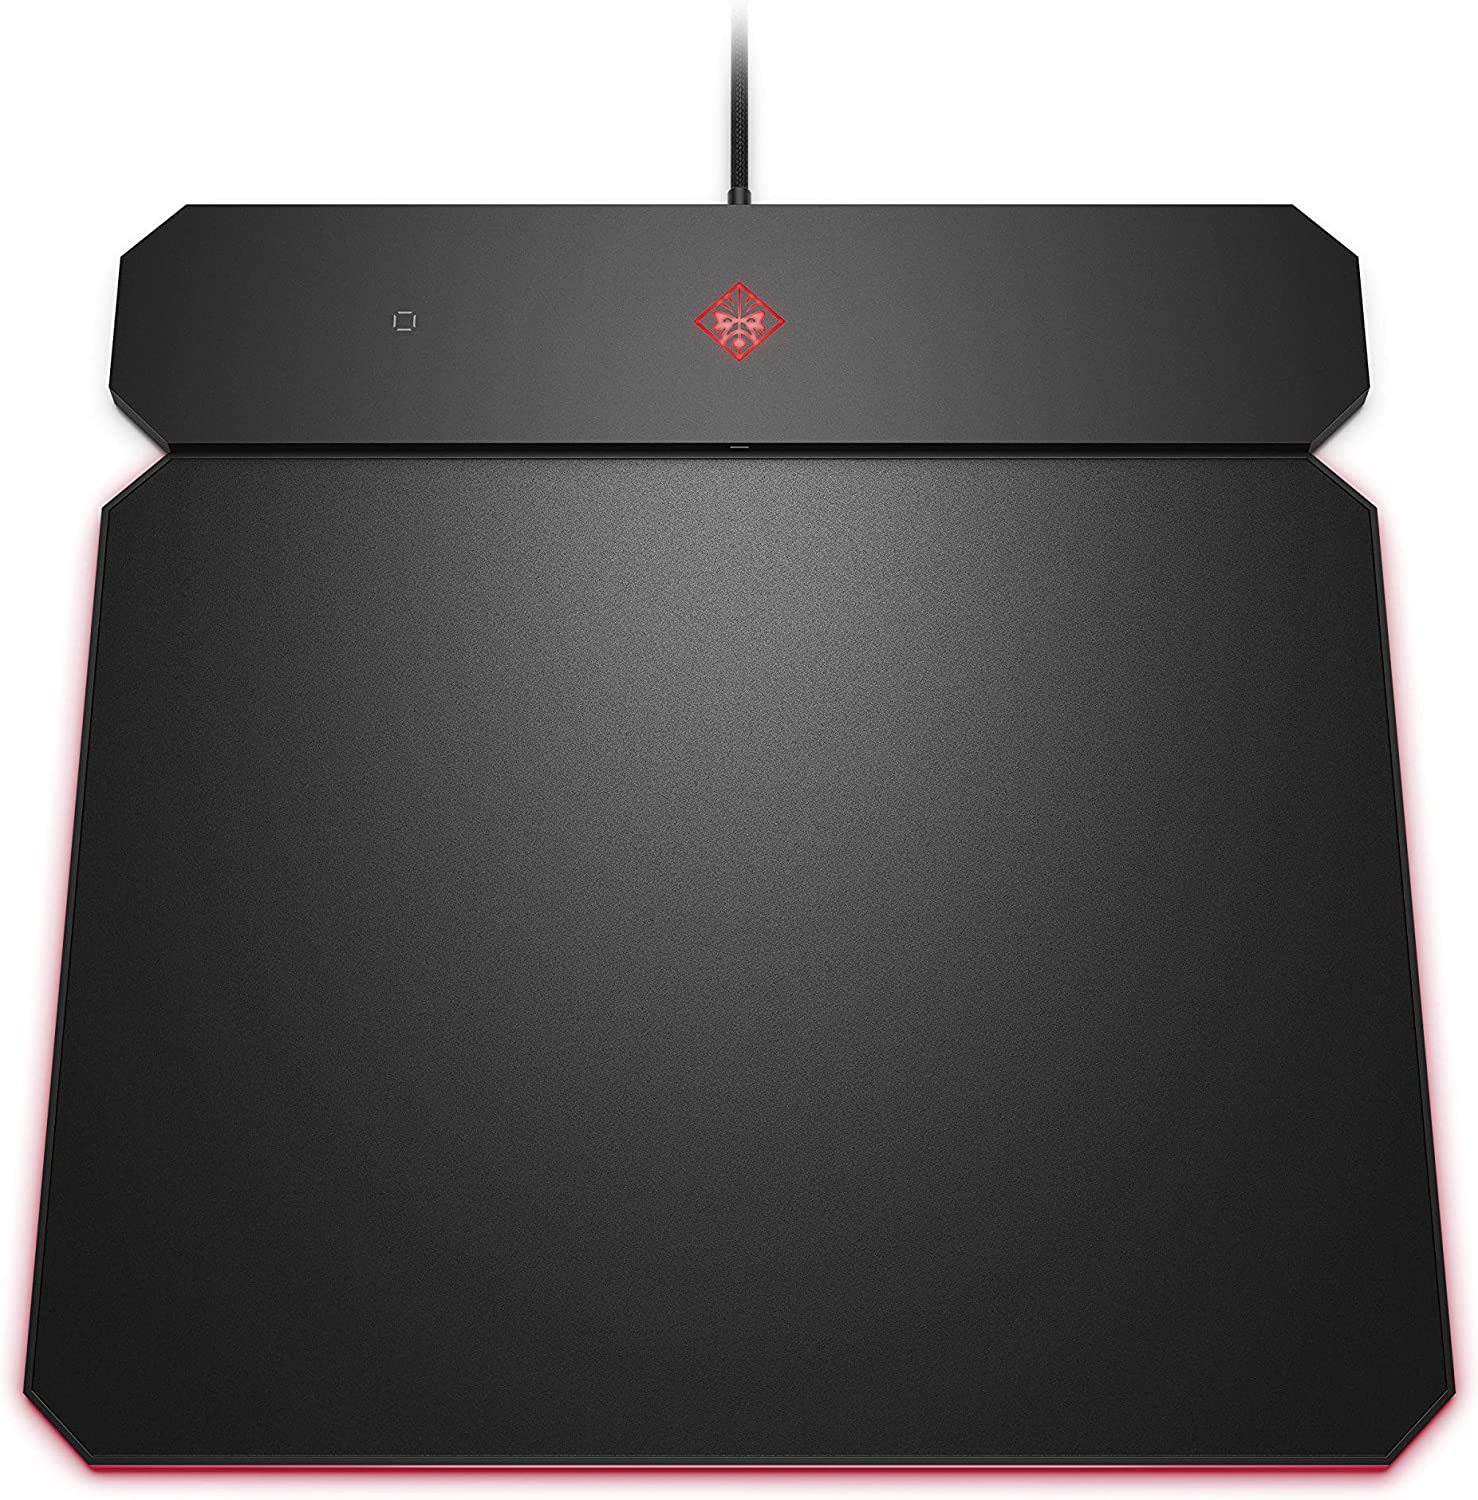 OMEN by HP Outpost Gaming Mouse Pad with Qi Wireless Charging, Custom RGB, and USB-A 2.0 Port, (6CM14AA), Black (6CM14AA#ABL)